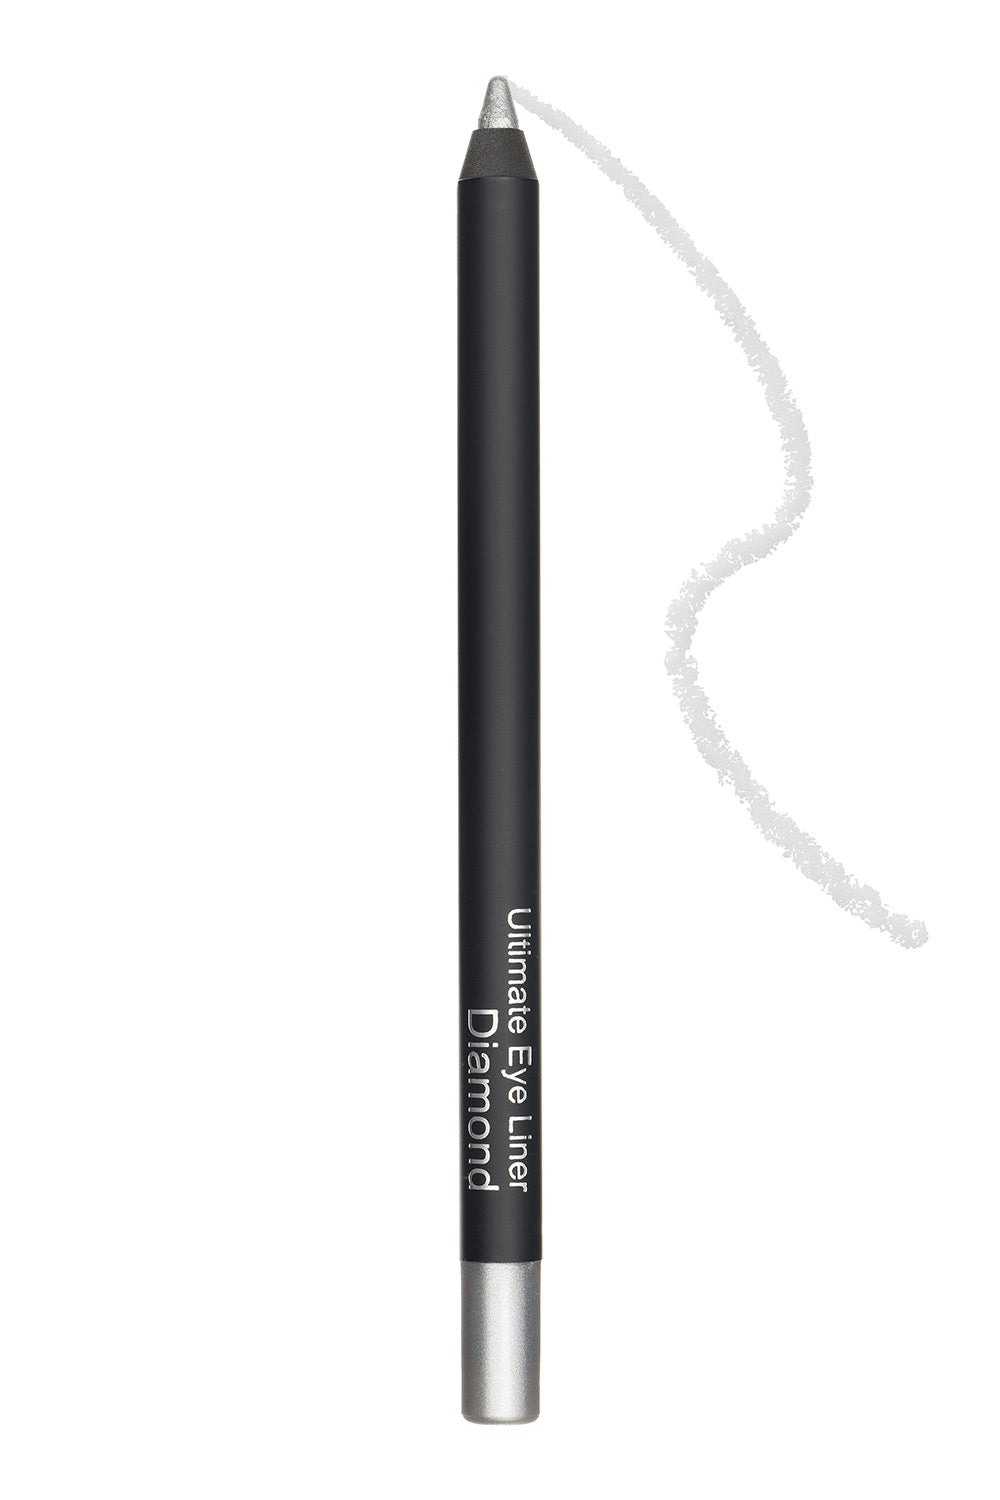 Type 4 Eye Liner Pencil - Diamond